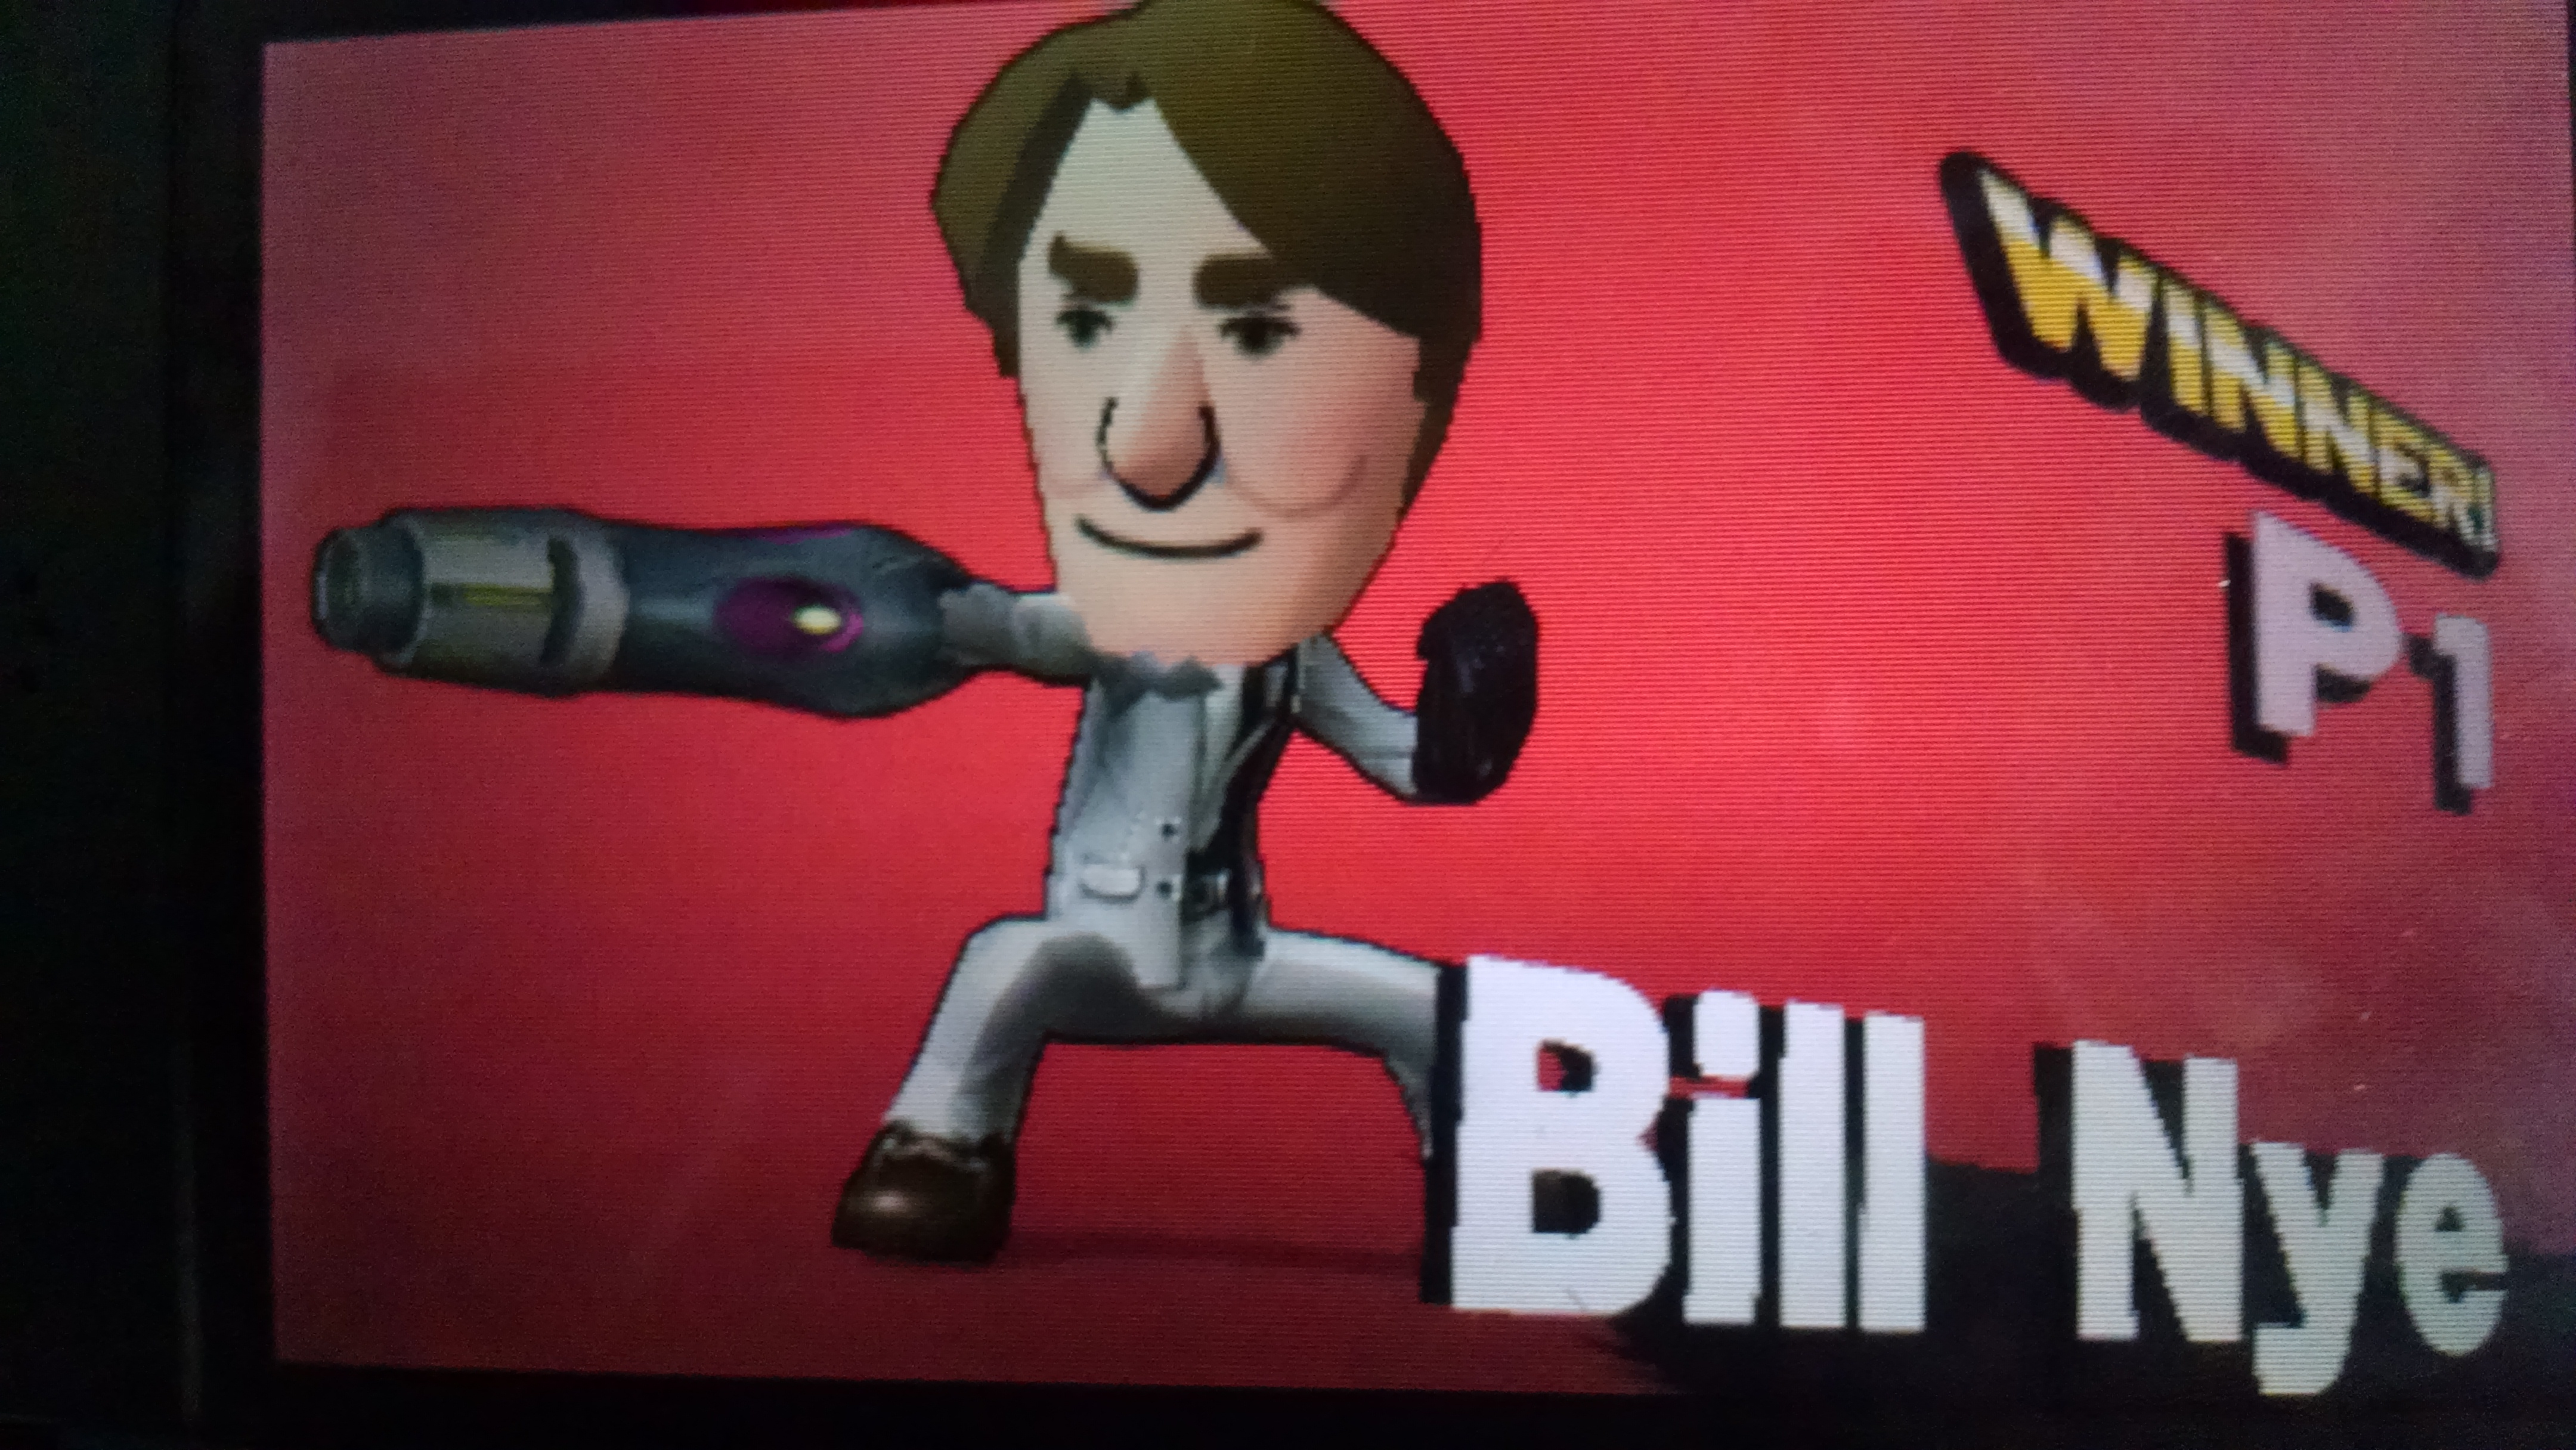 Bill Nye Explains The Science Mii Gunner Know Your Meme